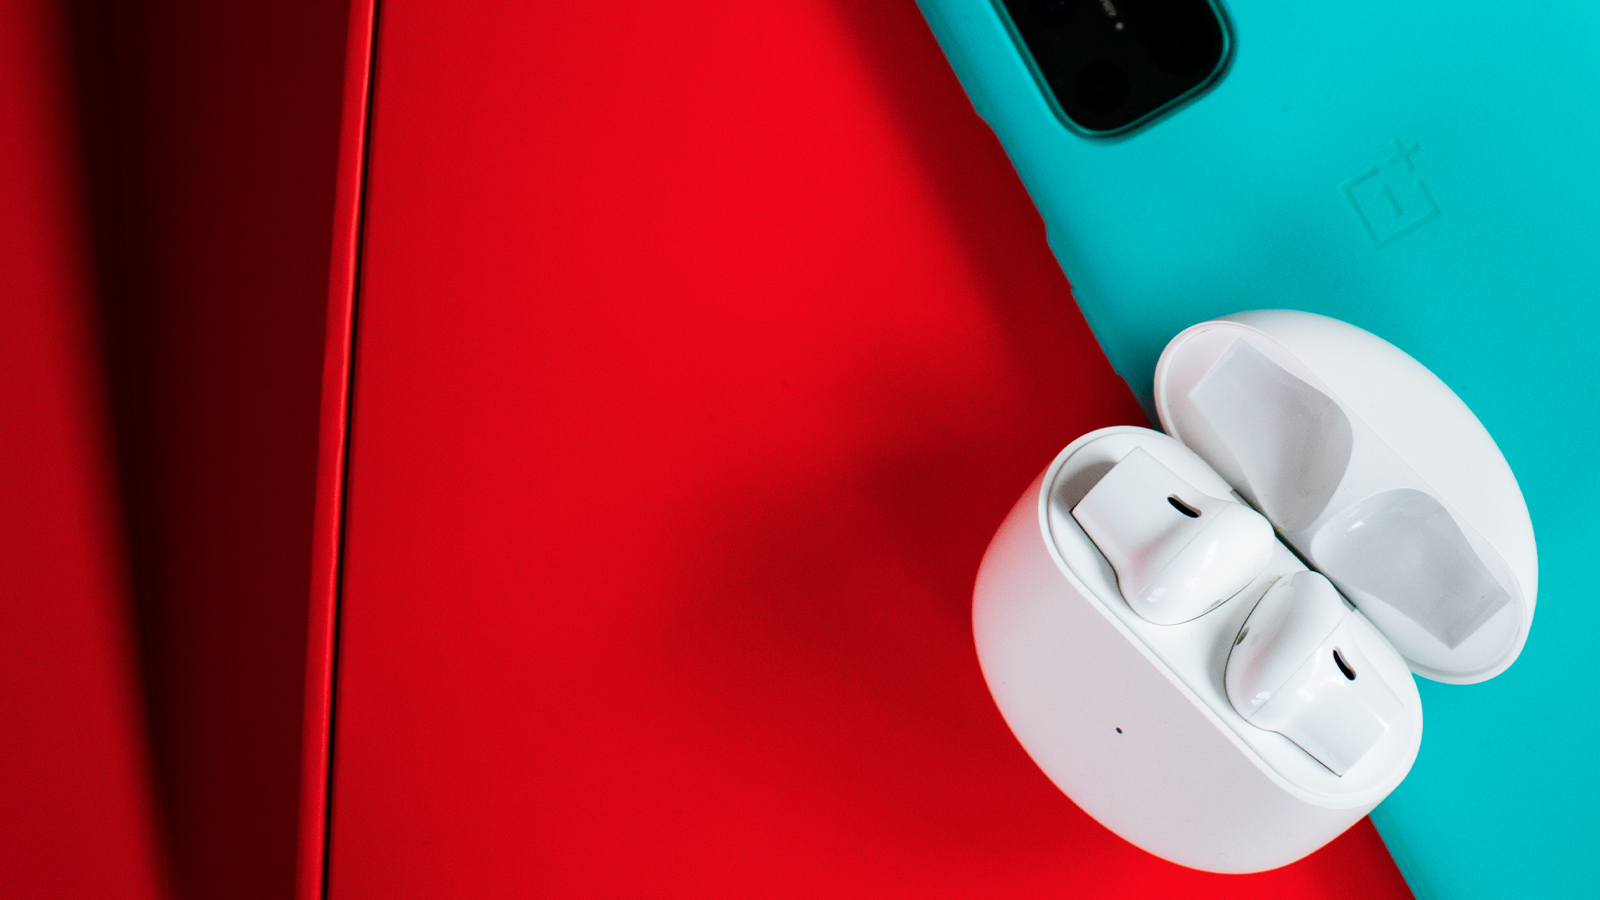 OnePlus Buds Earbuds